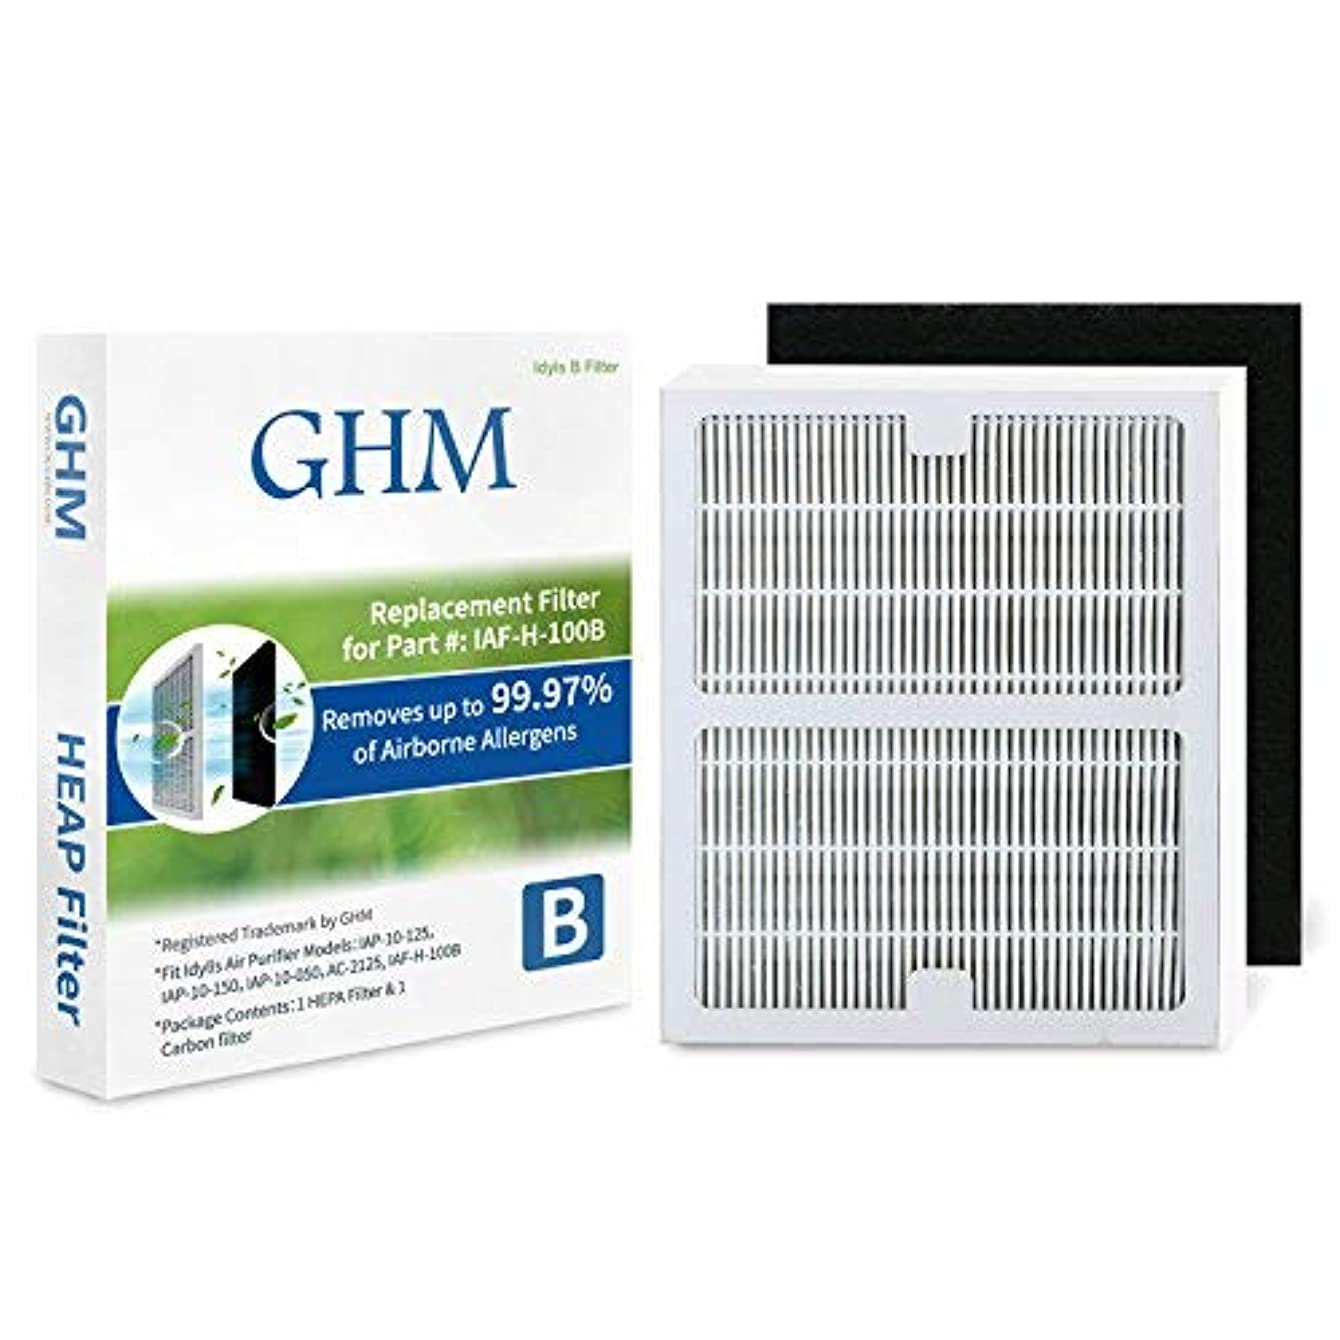 GHM Part # IAF-H-100B Air Purifier Filters for Idylis Air Purifier AC-2126, AC-2125, IAP-10-125 and IAP-10-150 Models